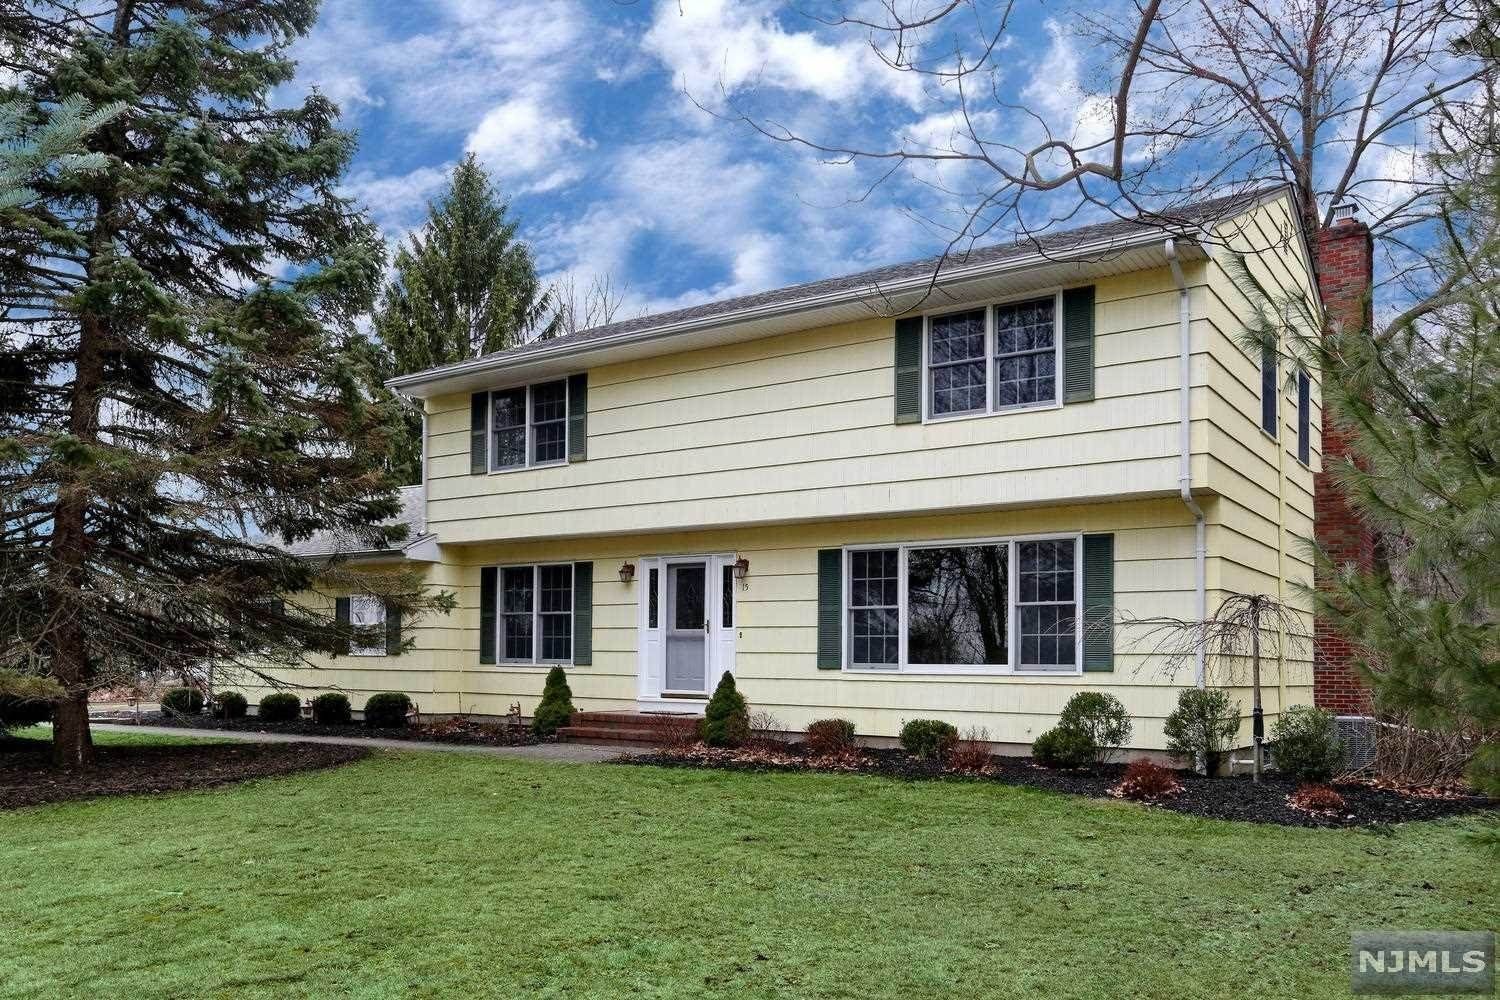 Single Family Home for Sale at 15 Holly Court Woodcliff Lake, New Jersey, 07677 United States